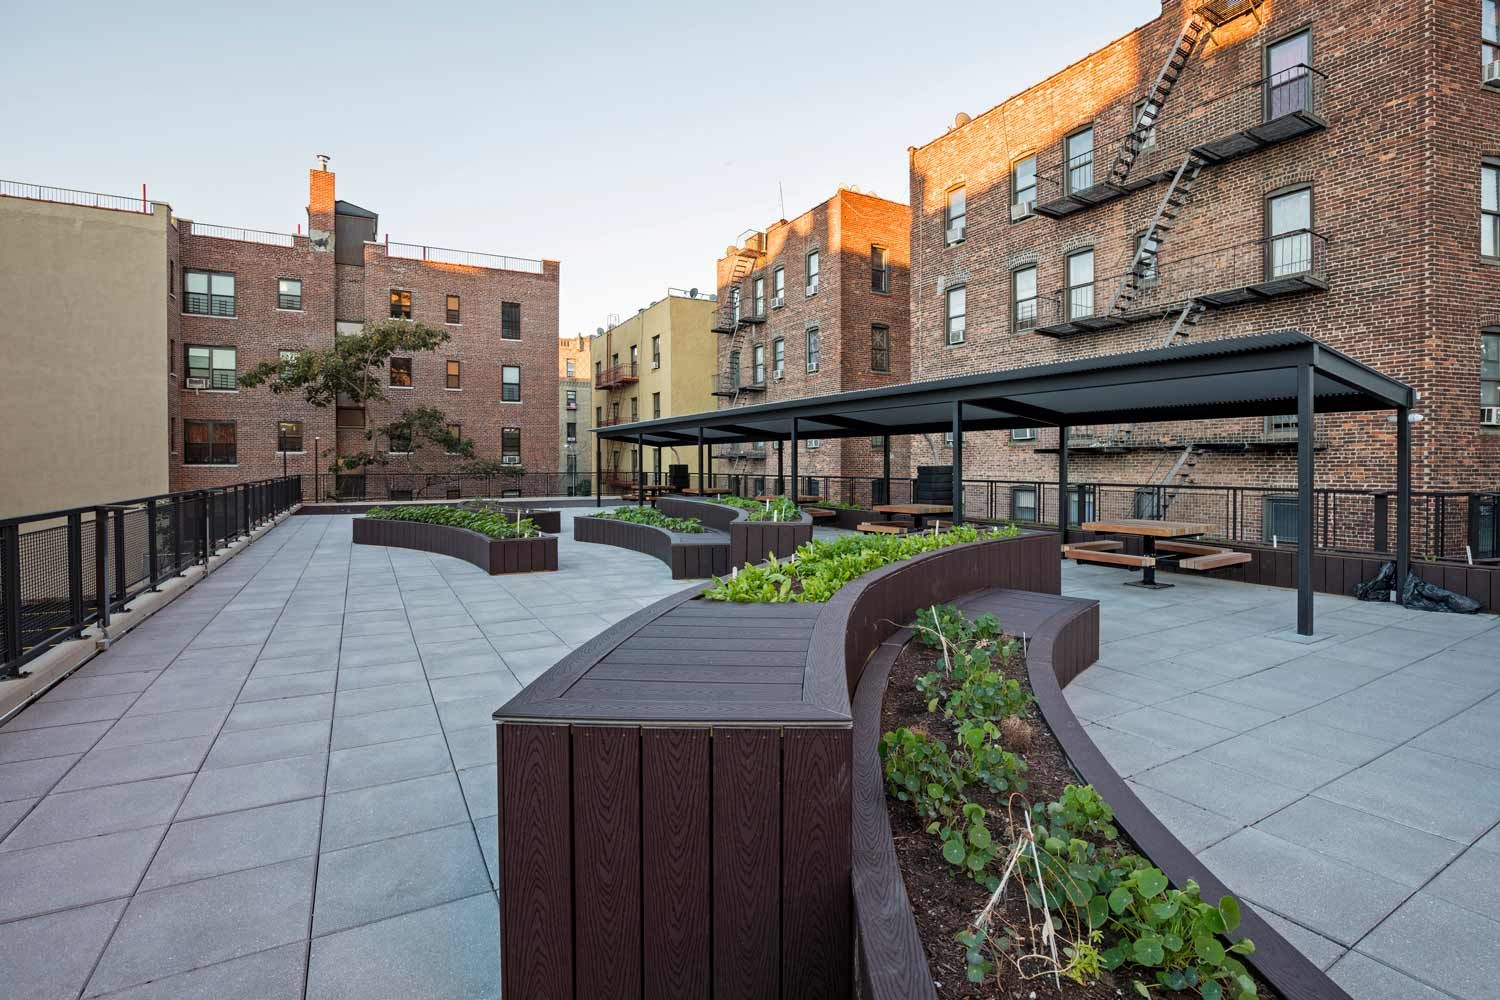 Gardening planters for resident use transform this affordable housing building into a community asset.